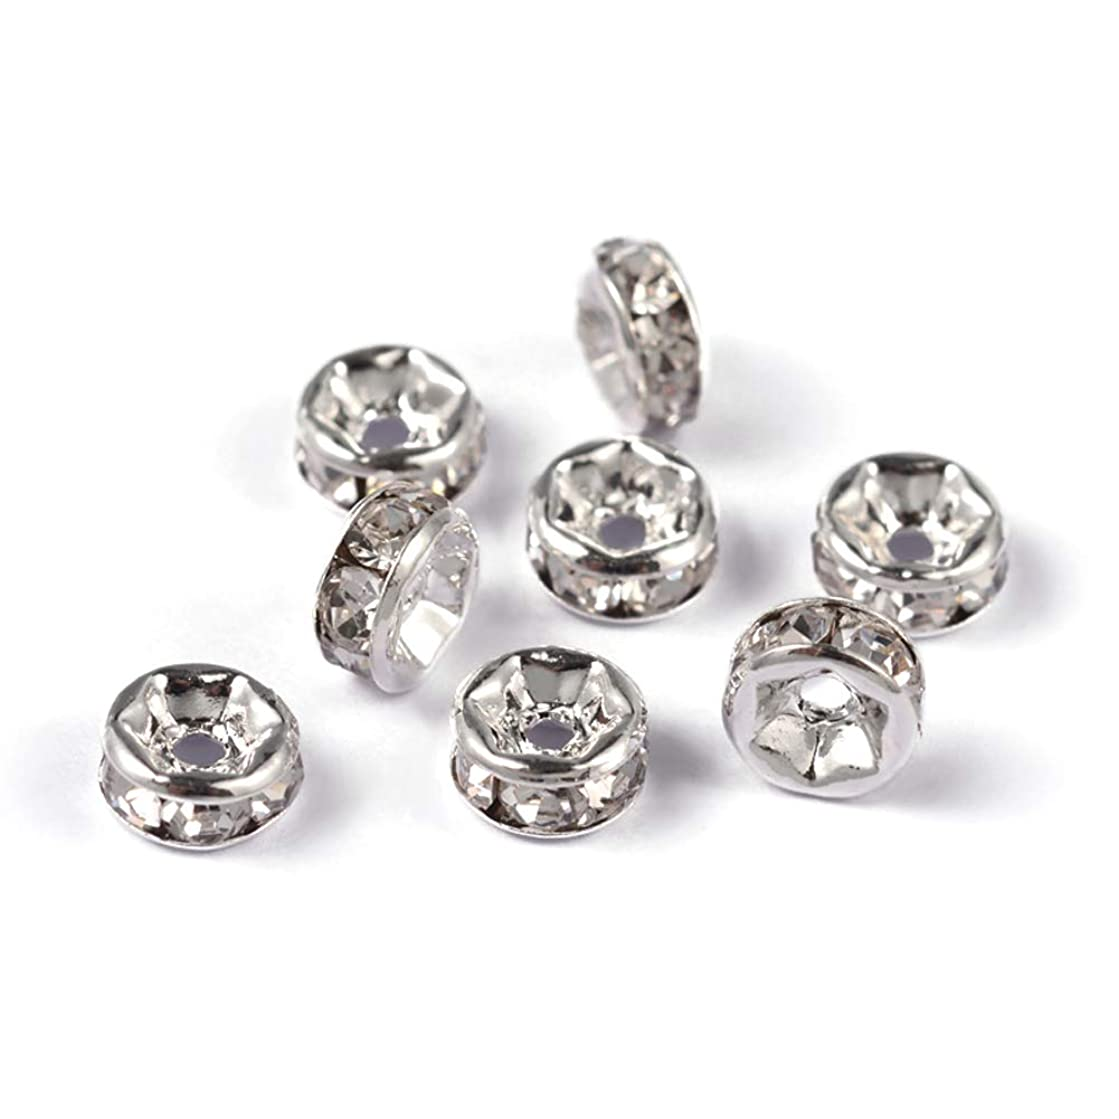 Craftdady 100Pcs Grade A Crystal Clear Rhinestone Rondelle Spacer Beads 6x3mm Nickel Free Silver Plated Brass Flat Round Metal Charm Beads for DIY Jewelry Making with 1mm Hole